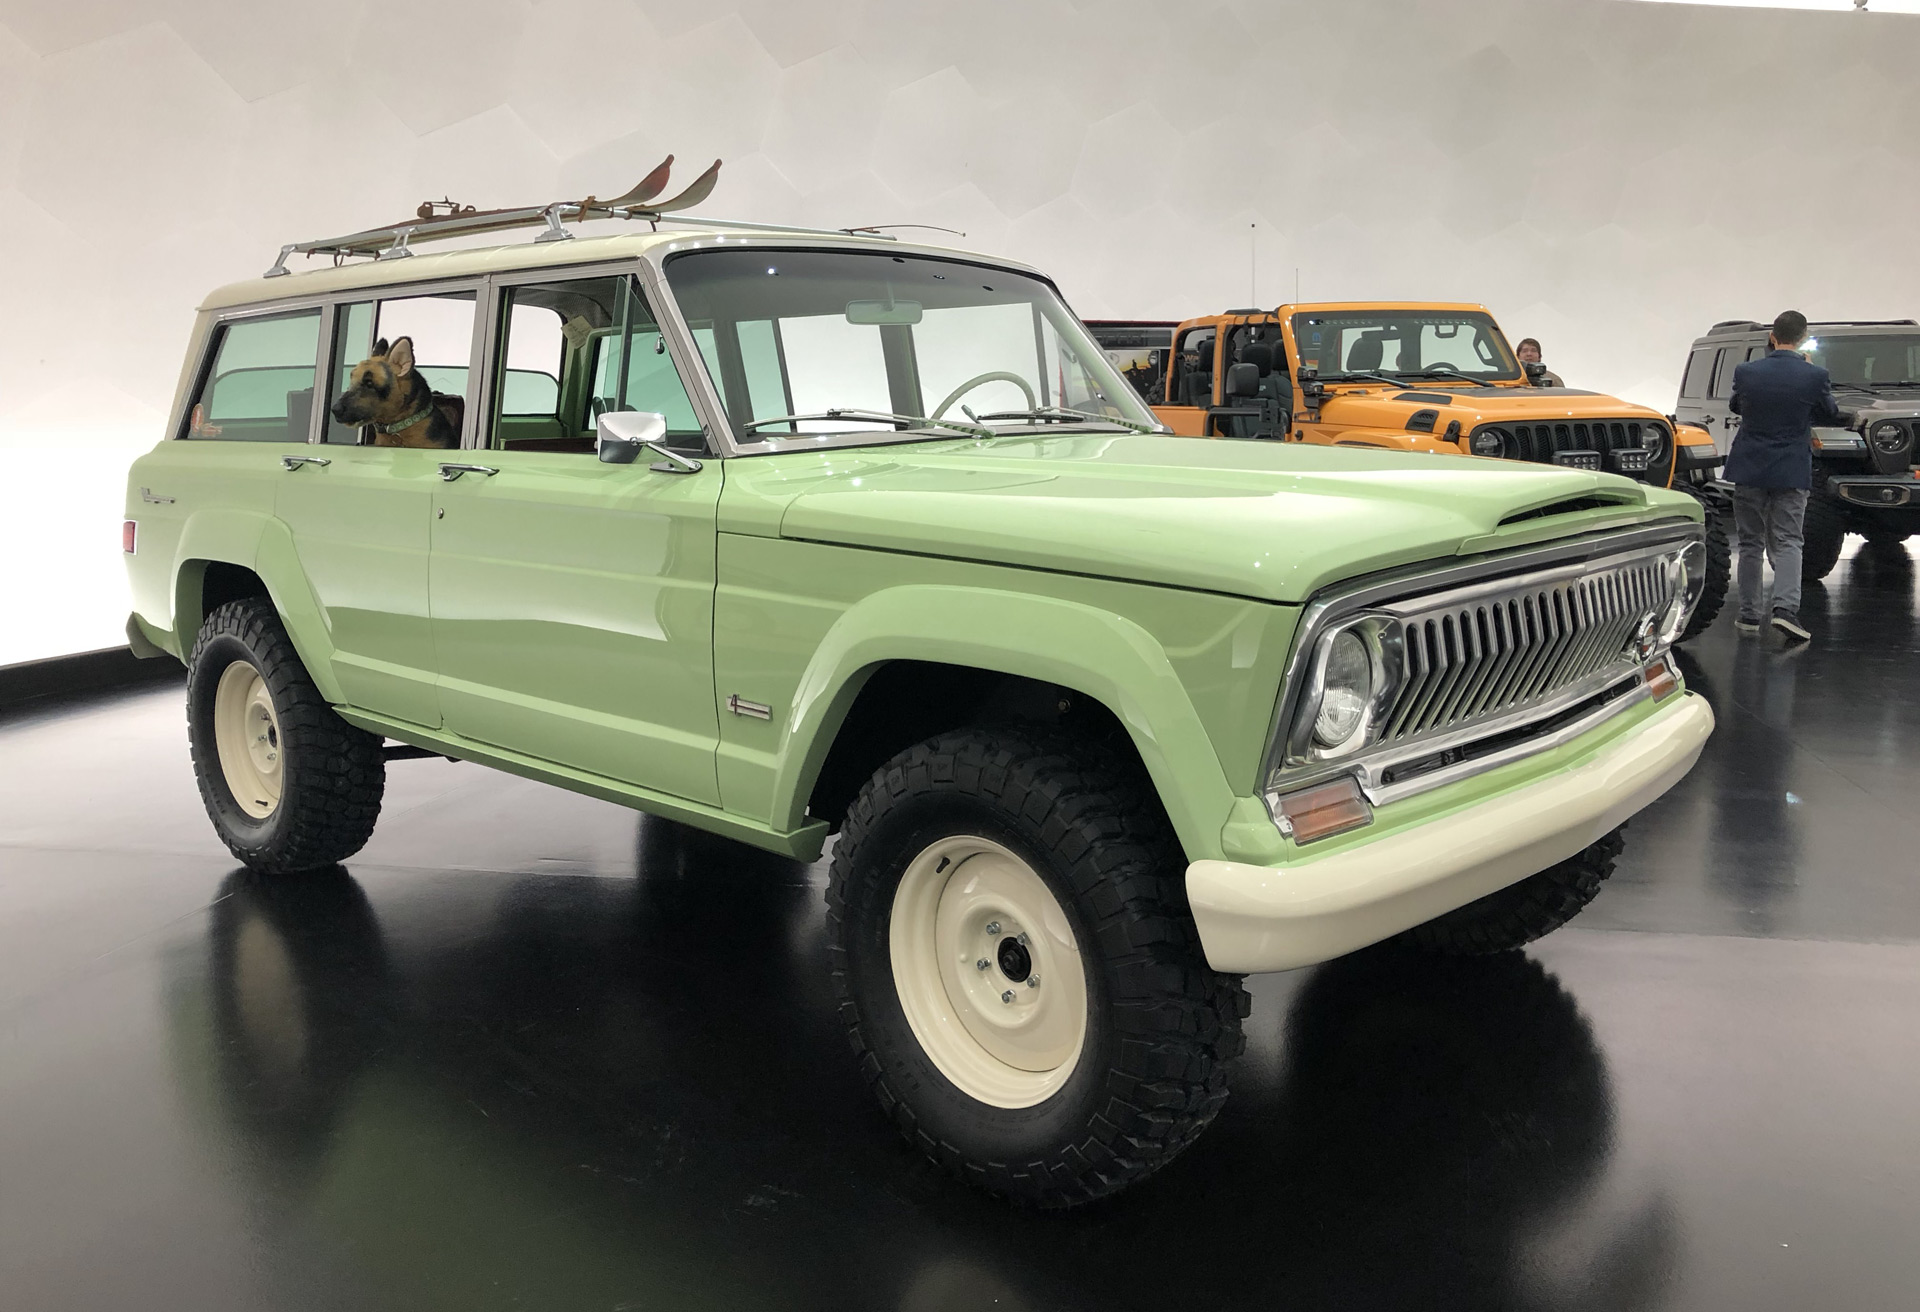 Classic Project Cars For Sale In Los Angeles